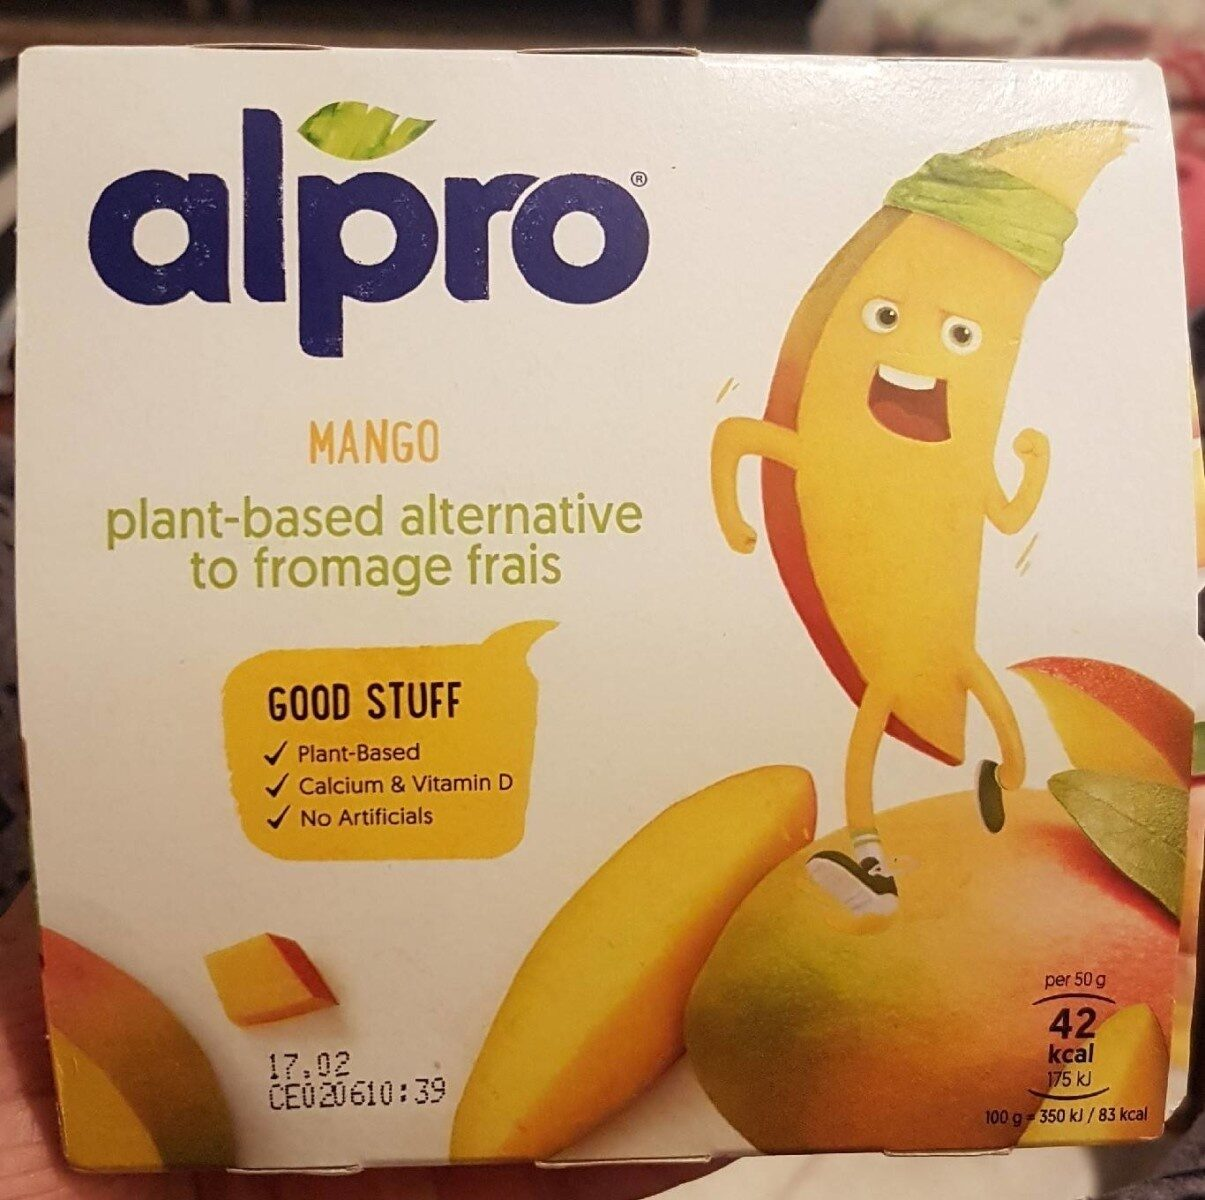 Mango plant-based alternative to fromage frais - Prodotto - en